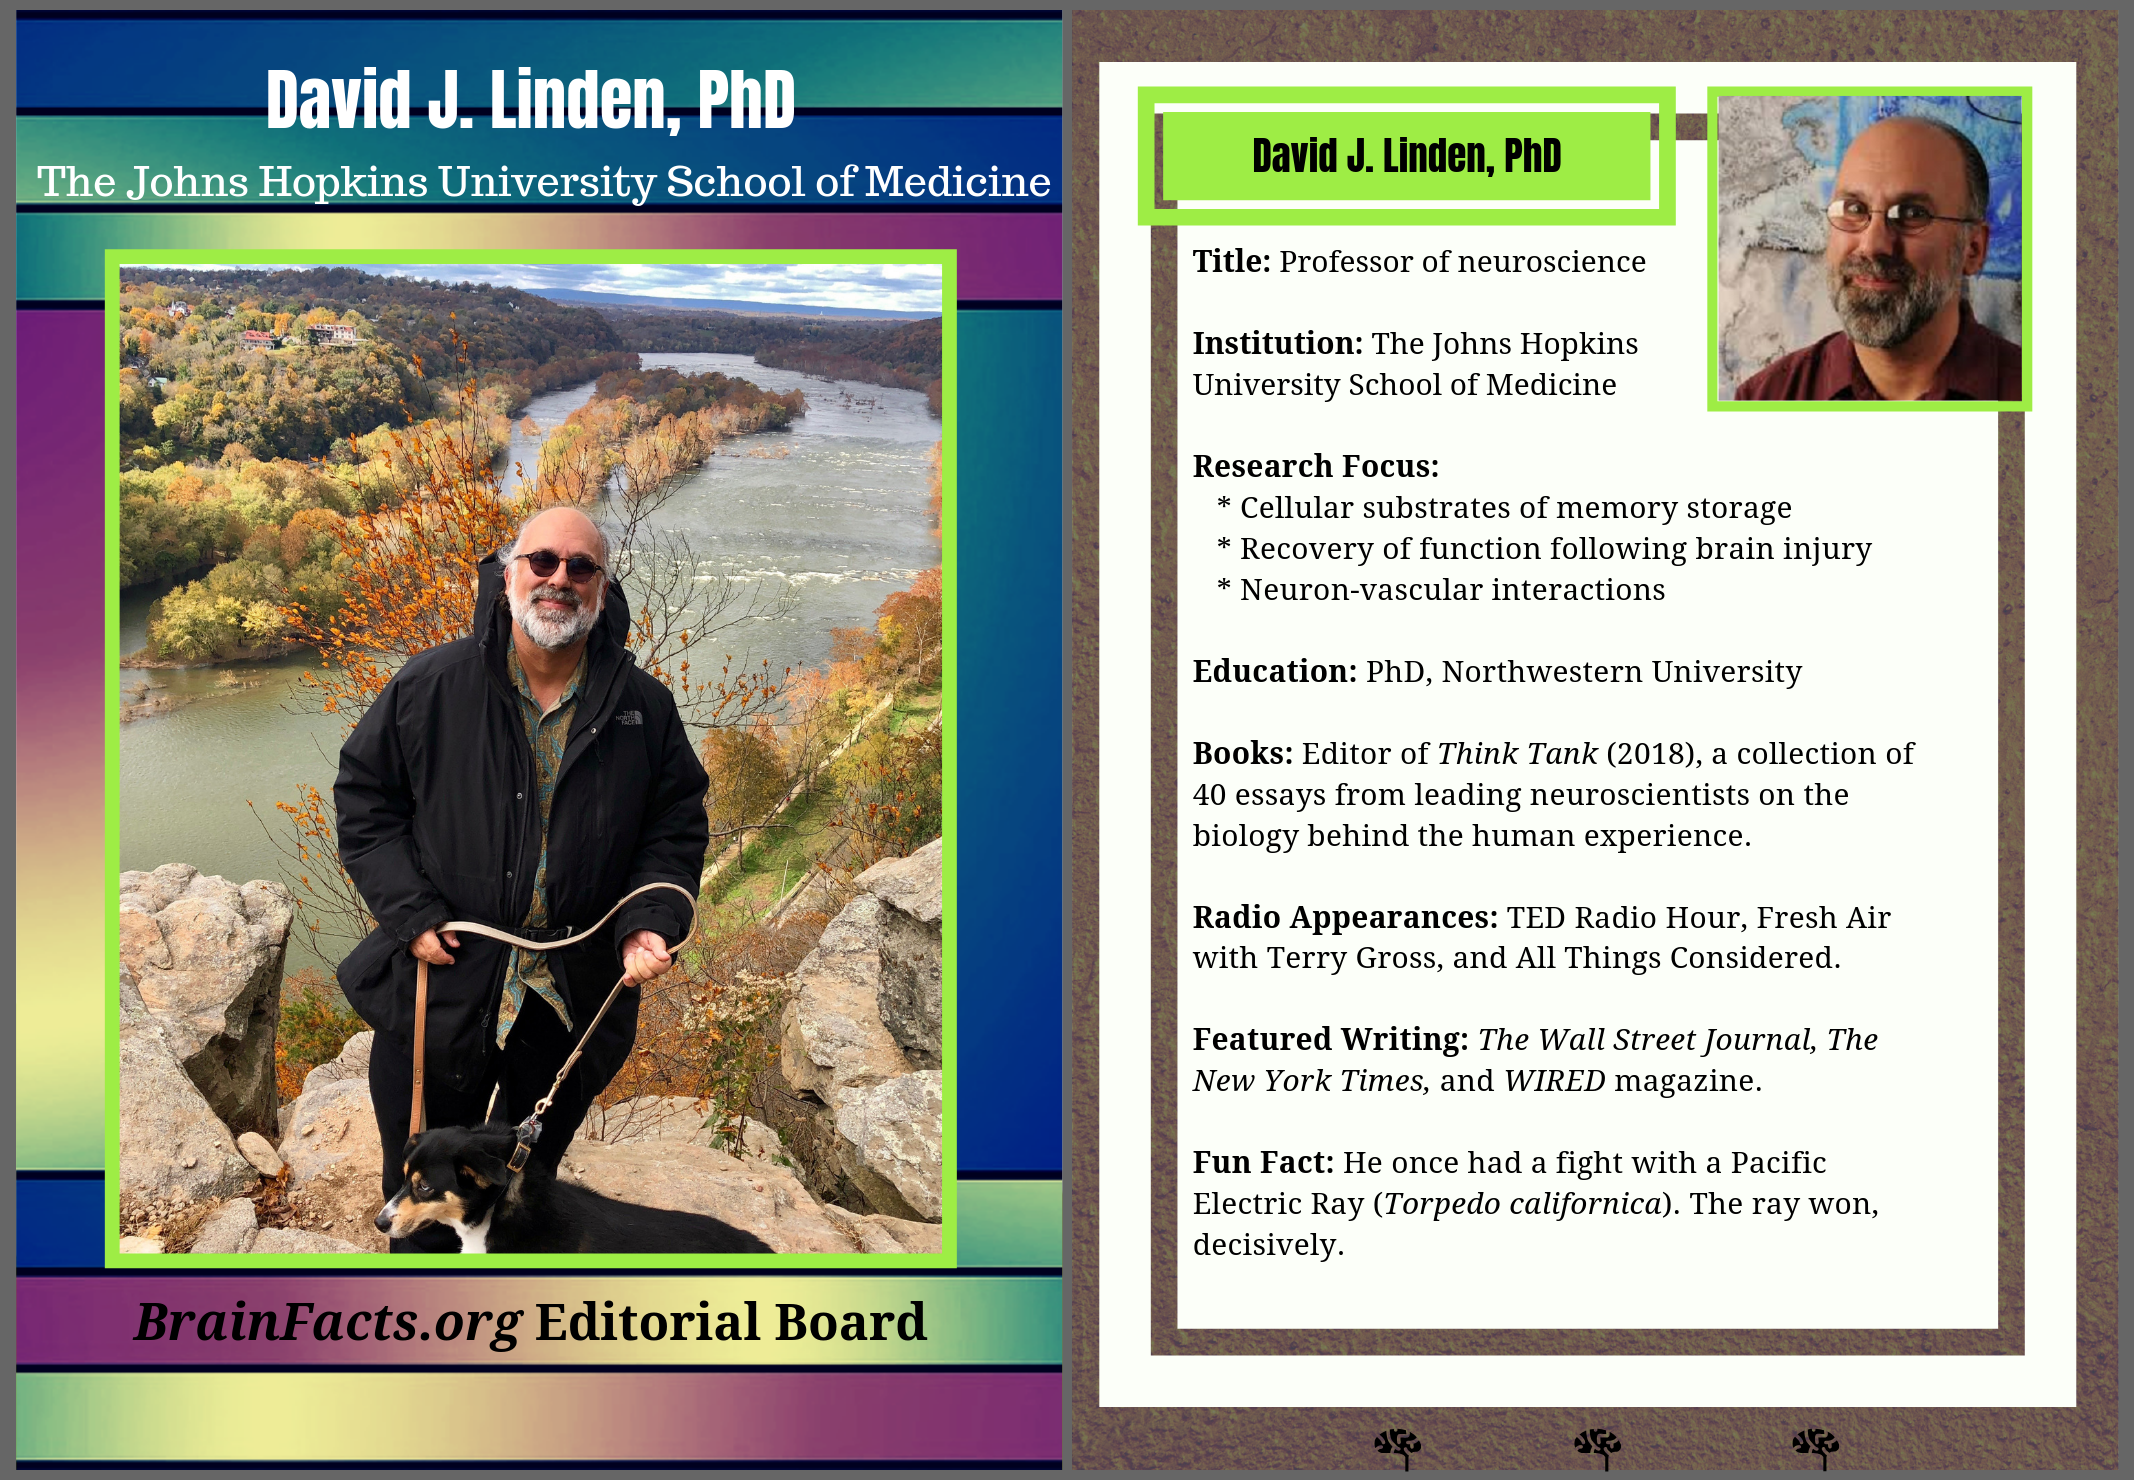 david linden with info on side